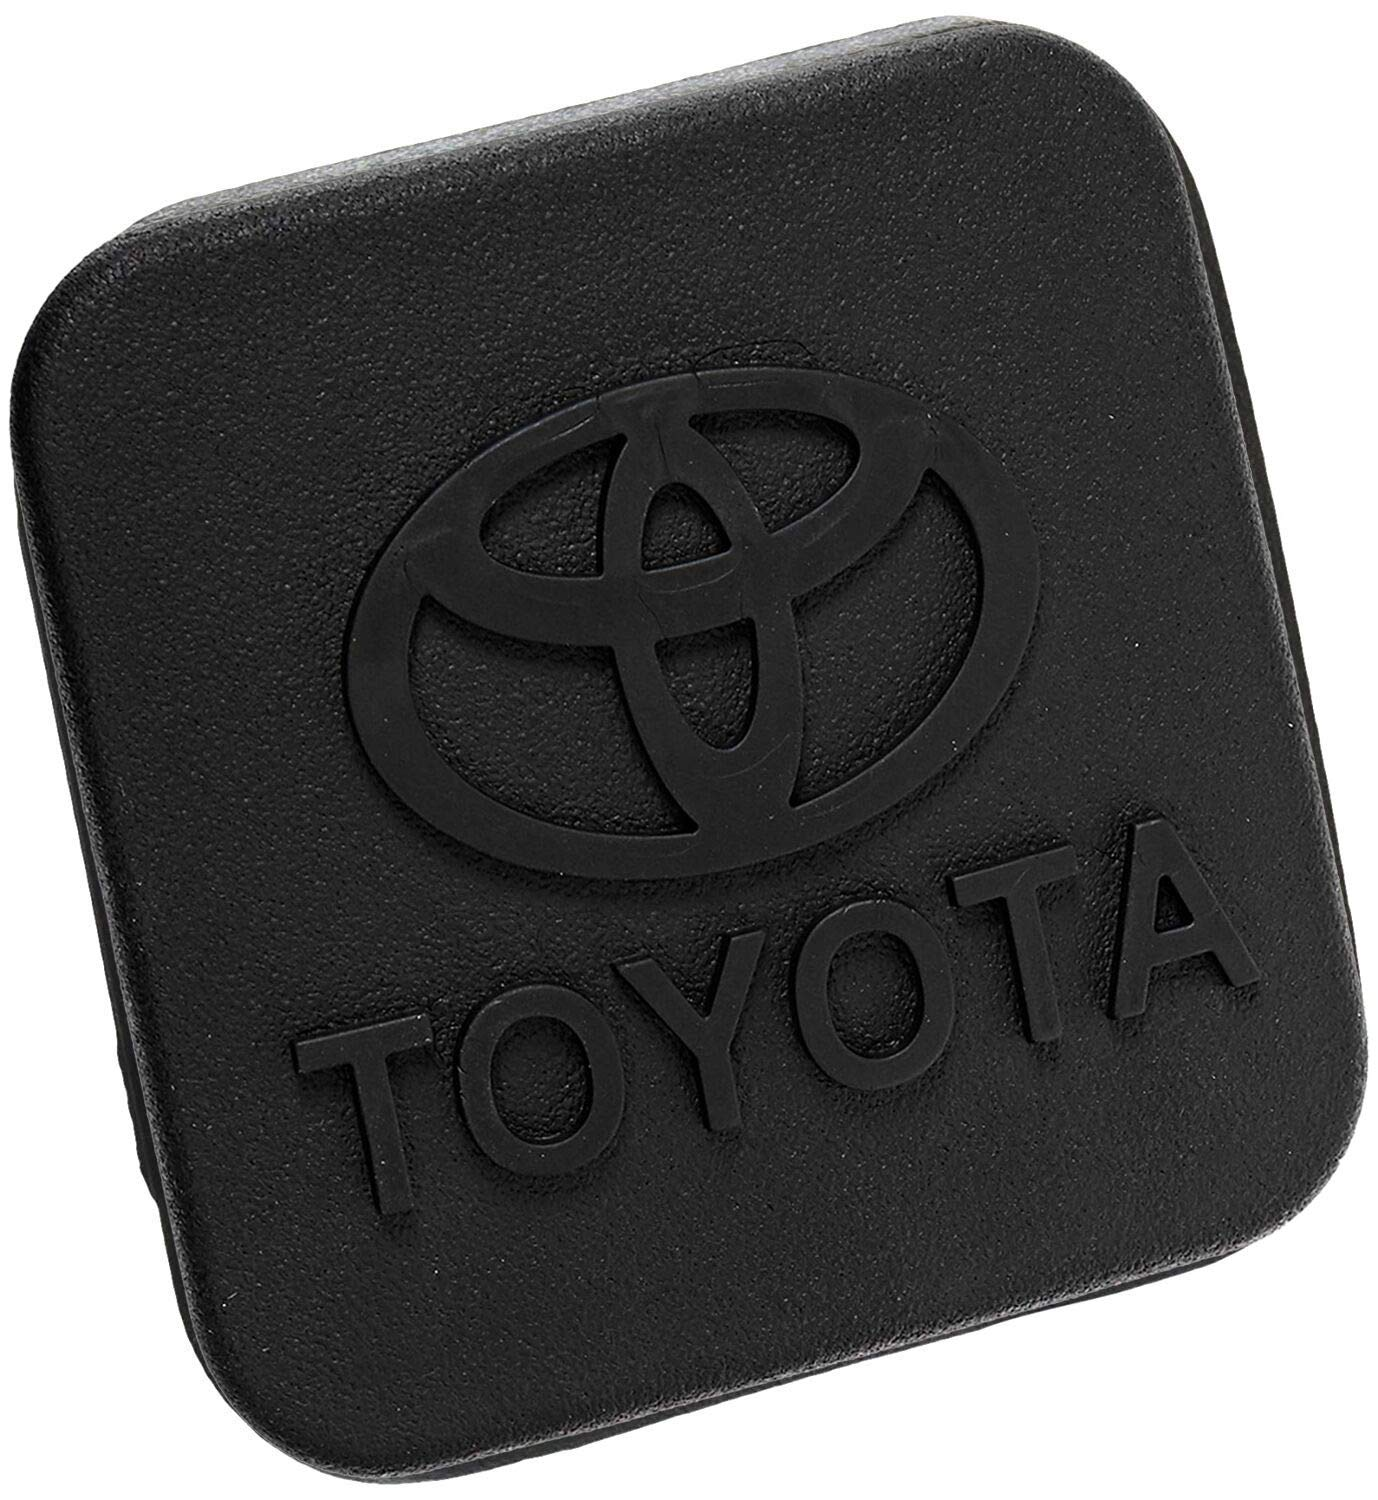 BoJie Car Trailer Hitch Cover,with Toyota Logo for Toyota Accessories PT228-35960-HP Receiver Tube Hitch Plug(Black) (for Toyota) by BoJie Car